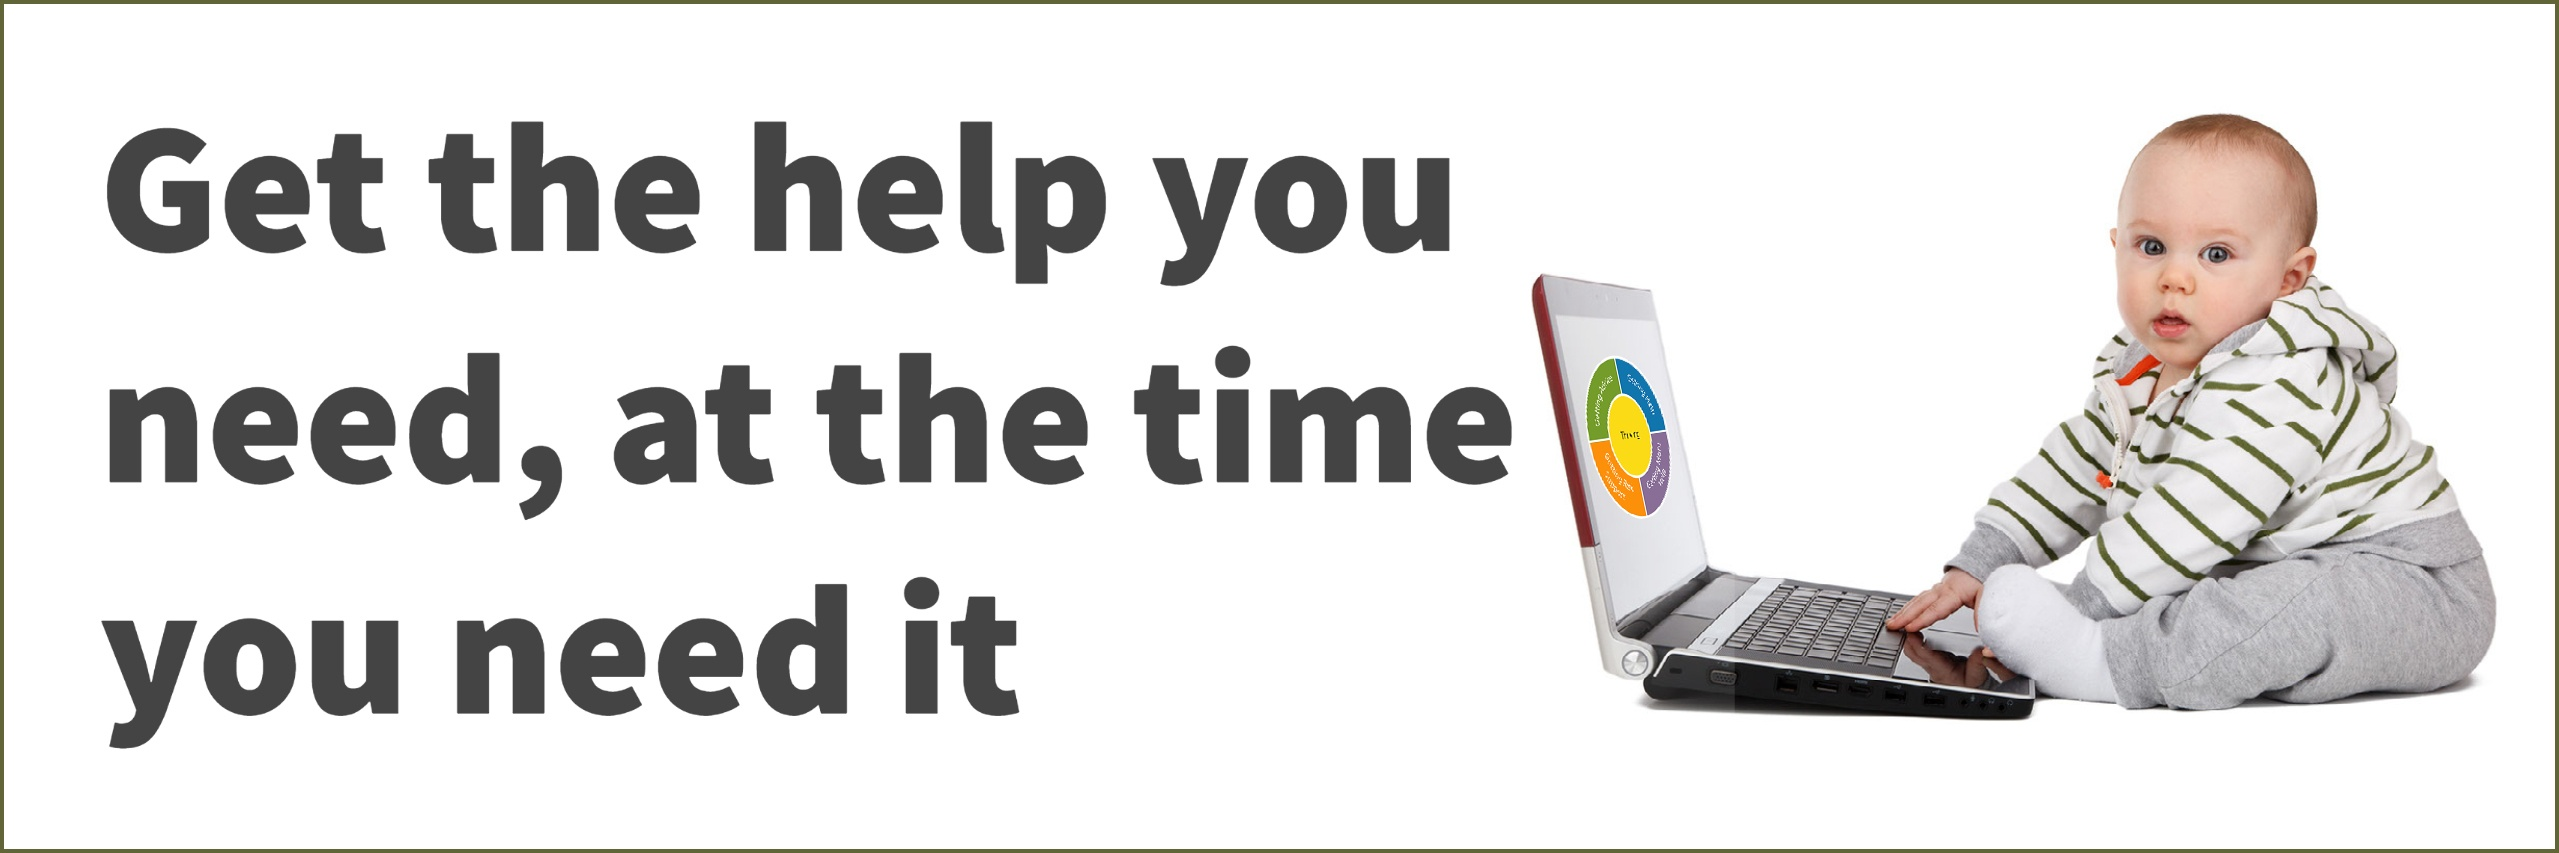 Get the help you need, at the time you need it - Access (Community Health, Wellbeing and SEND)